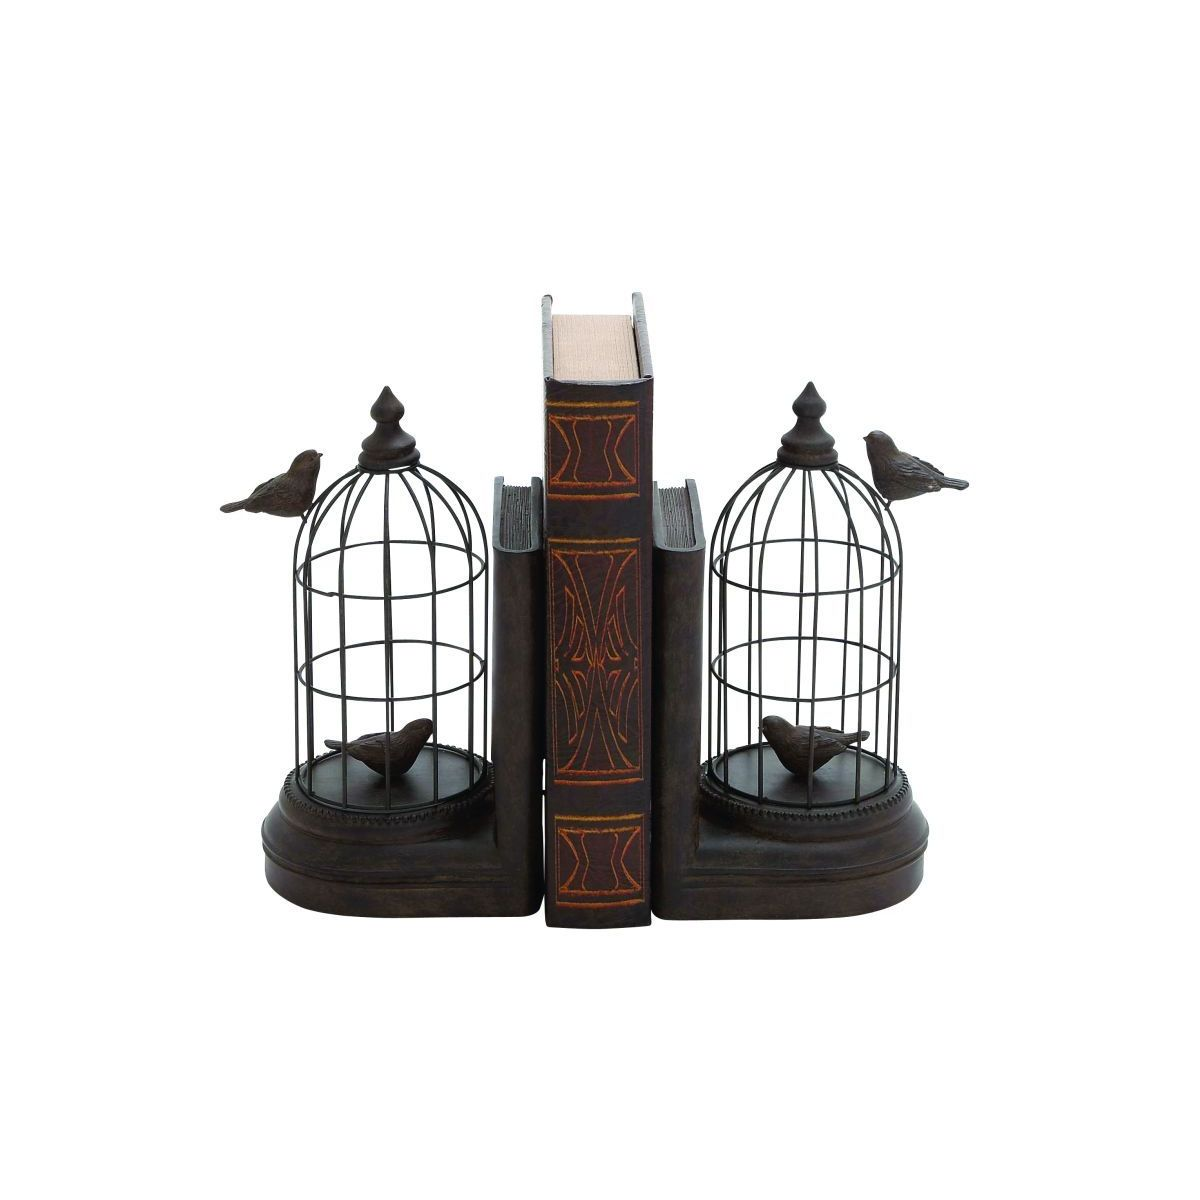 Black Iron/Stone/Resin 10-inch High x 6-inch Wide Birdcage Bookend Pair